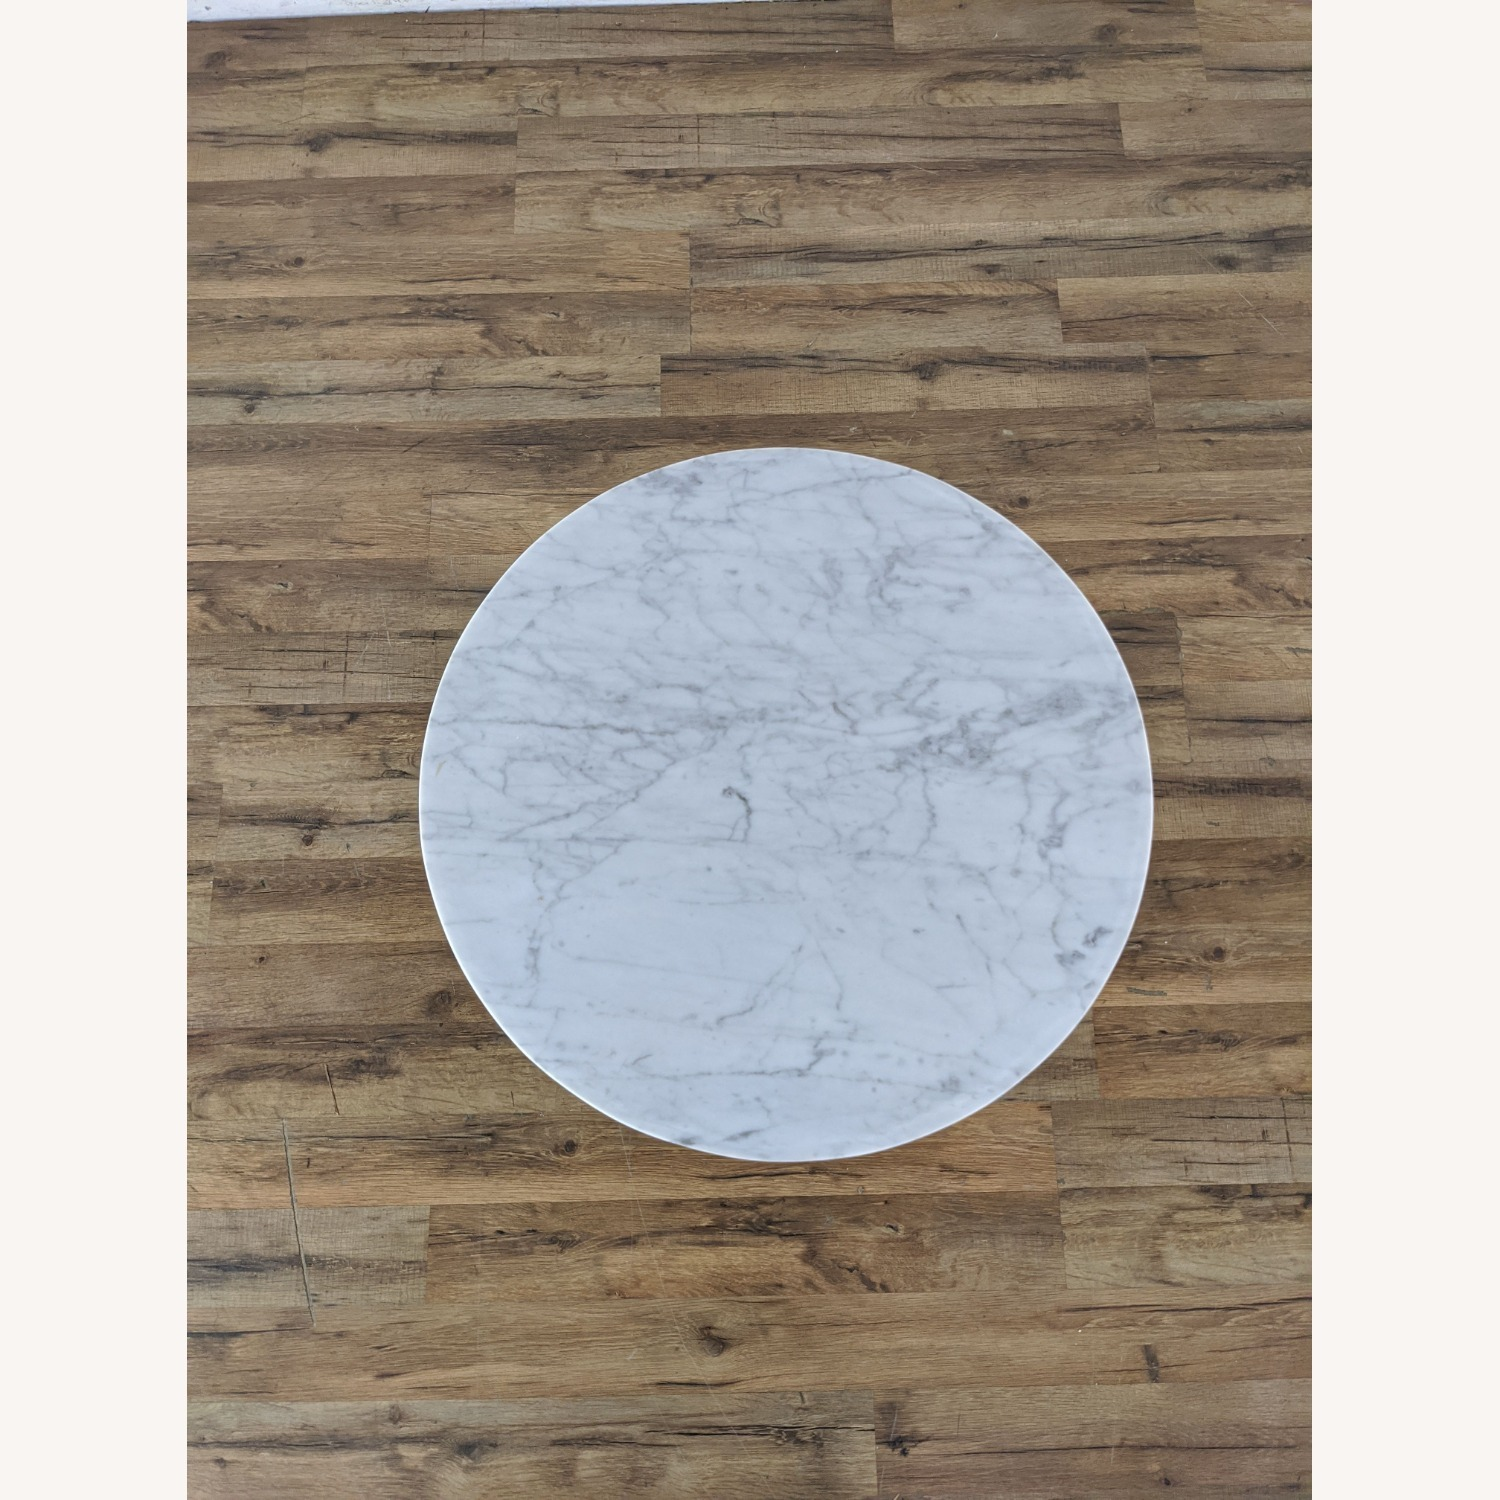 West Elm Marble Topped Pedestal End Table - image-3